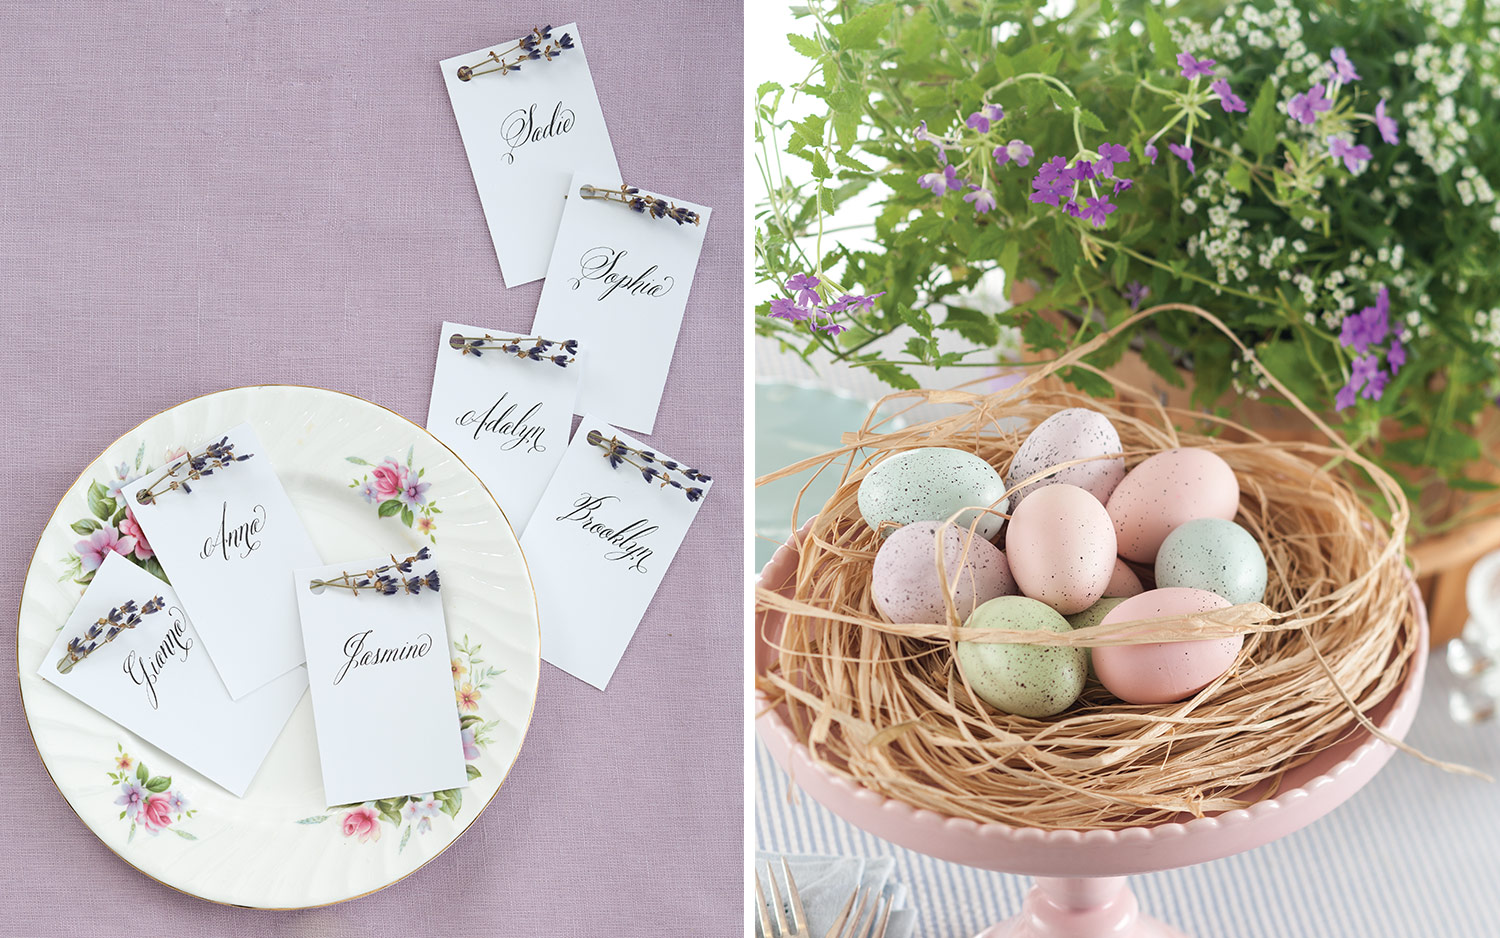 7 of Our Favorite Entertaining Touches for Spring